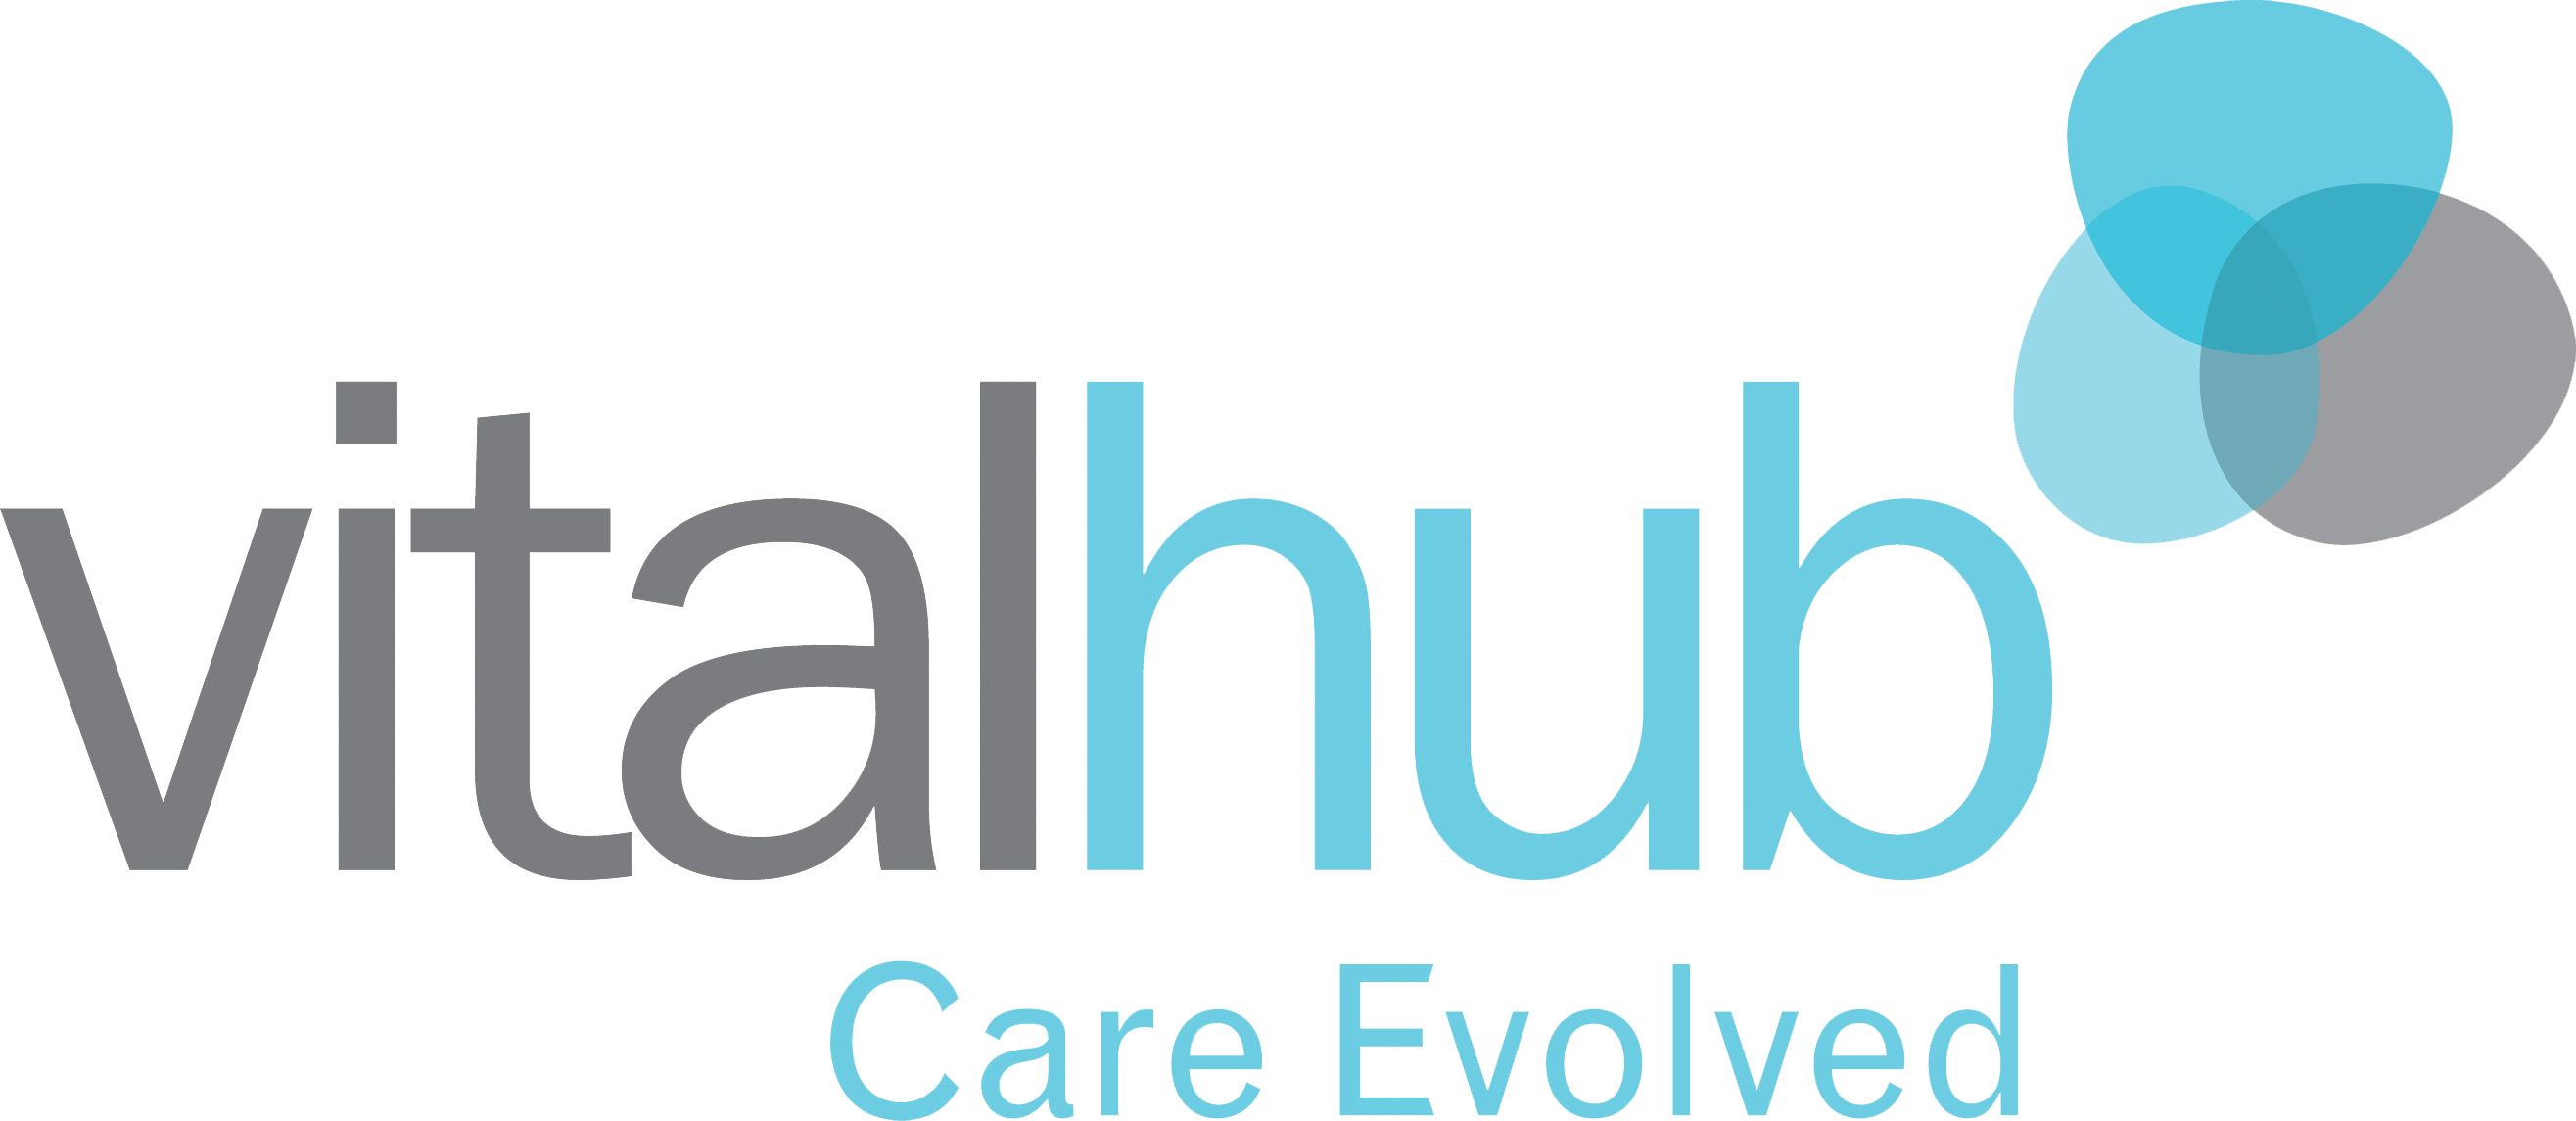 VitalHub Announces Significant Customer Go-Live